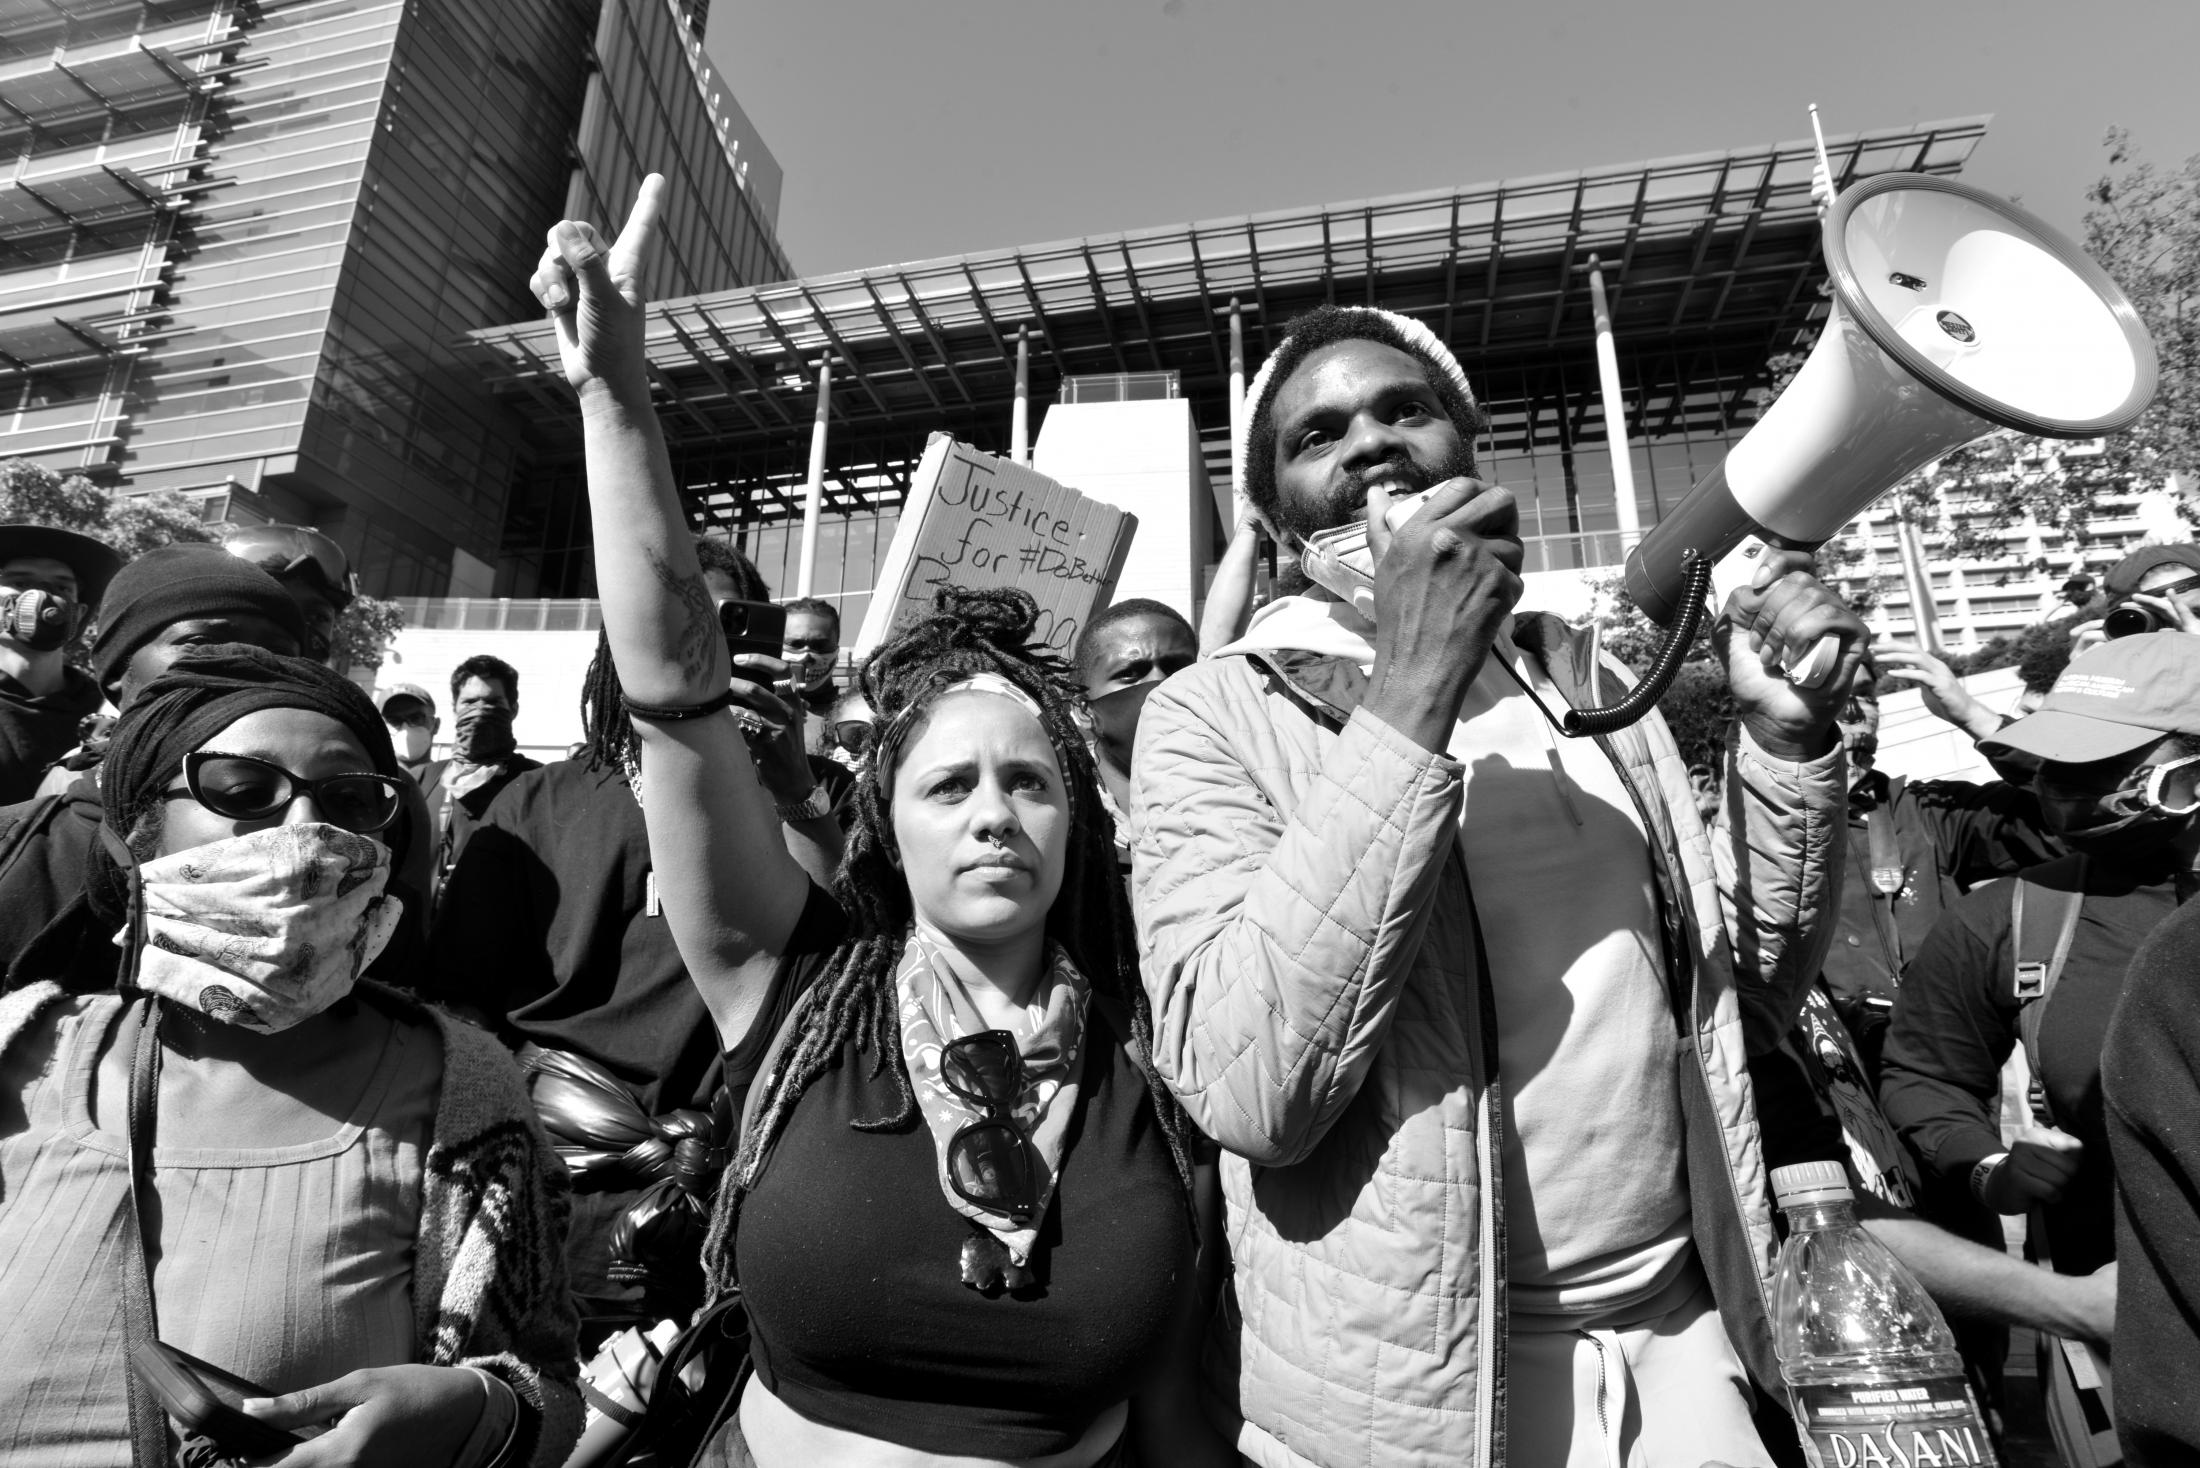 Leading activists give speeches outside of City Hall in downtown Seattle after the protest was followed by the National Guard.